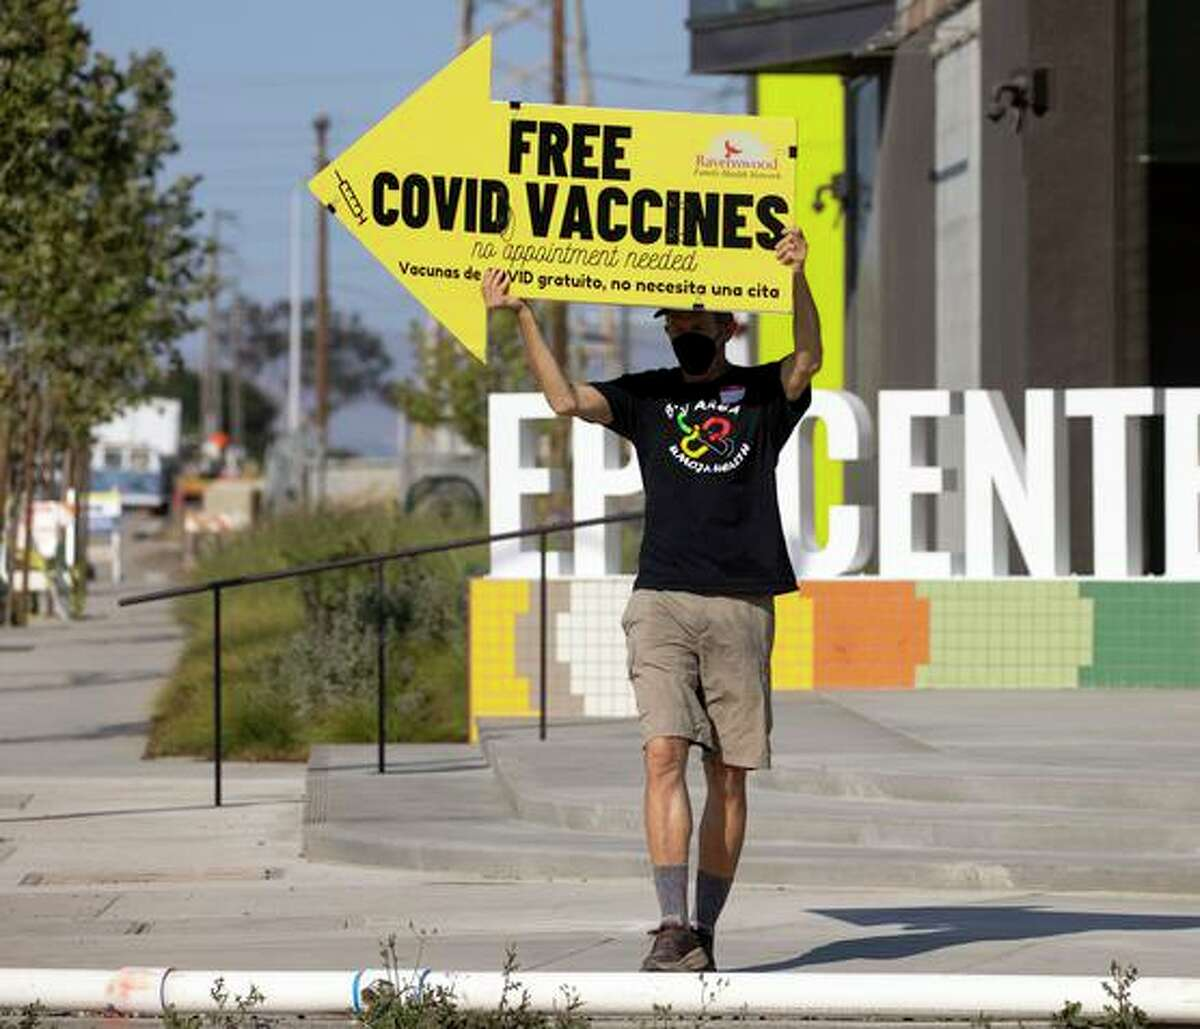 Coronavirus vaccinations being promoted in East Palo Alto last week.